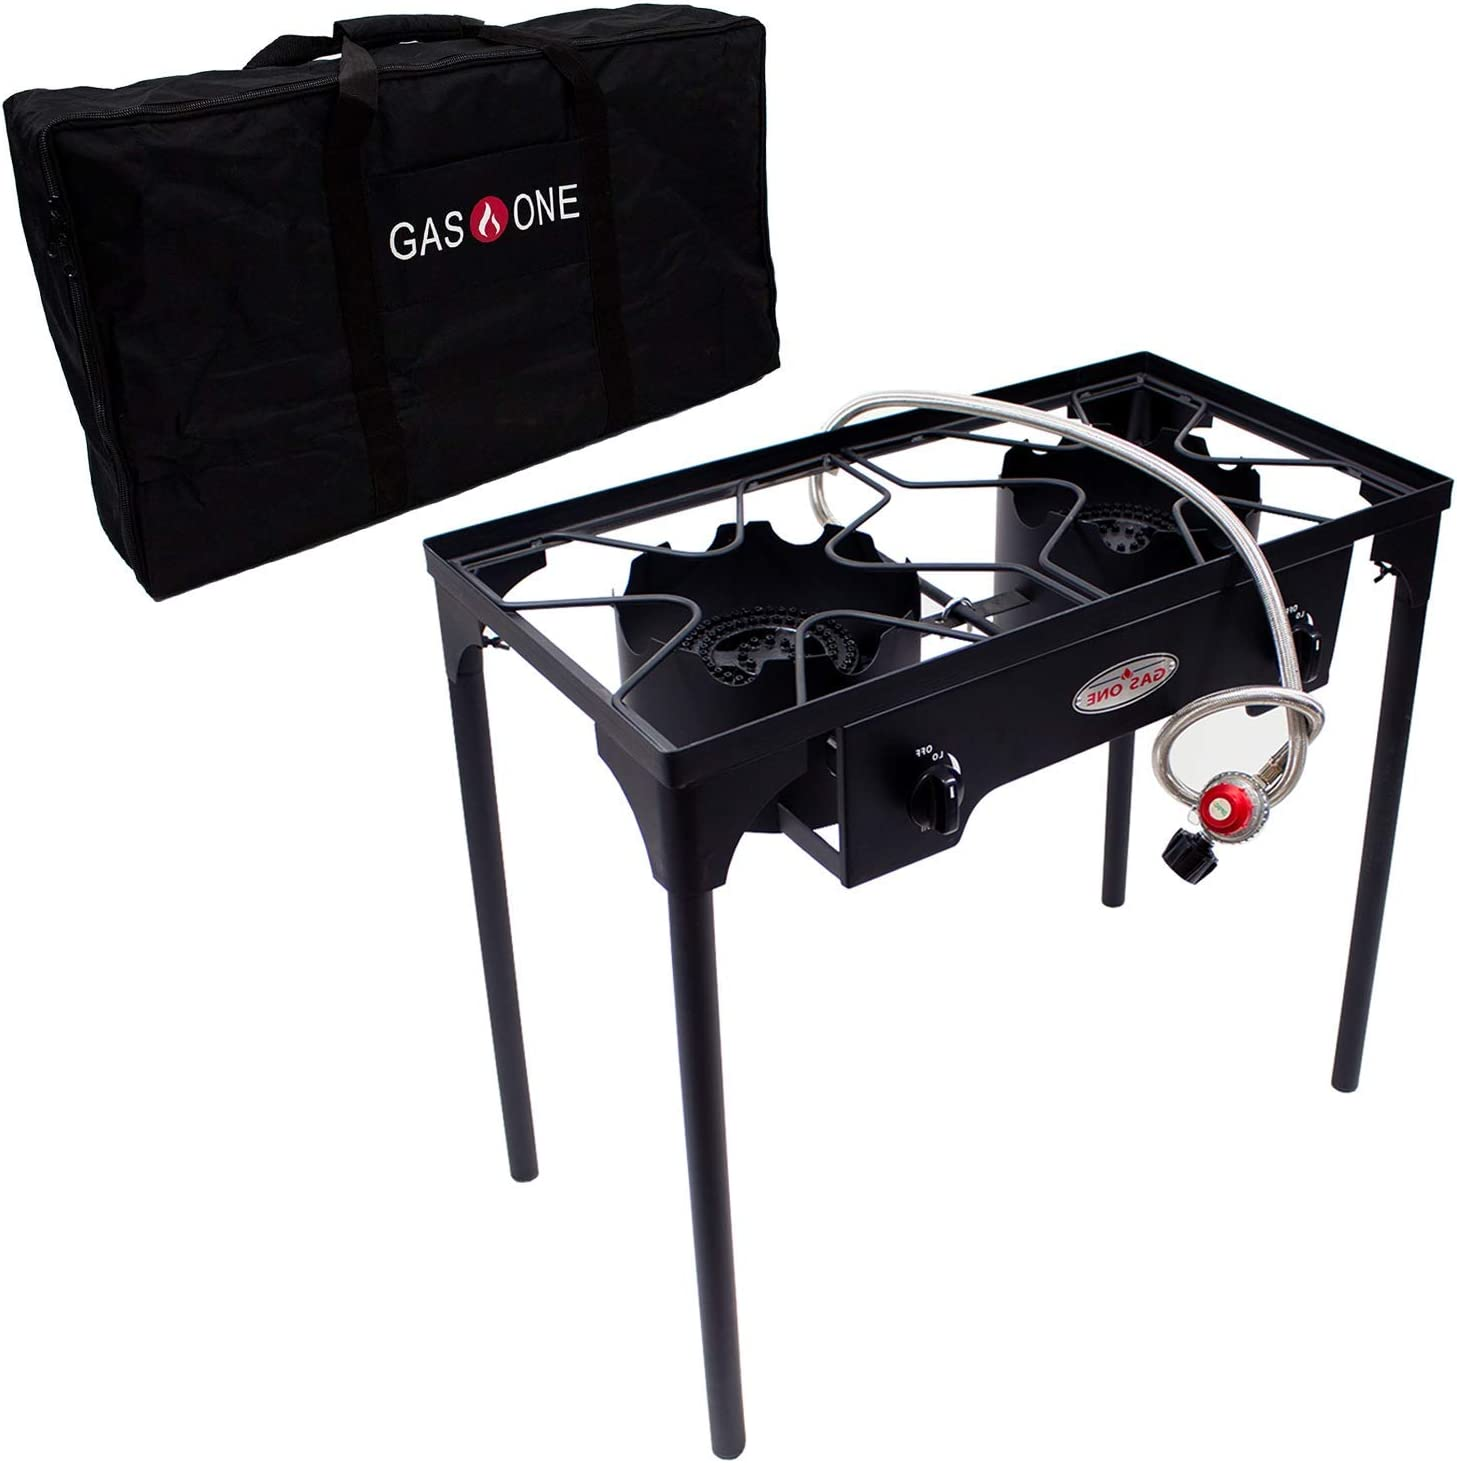 GasOne B-5000+50460 Propane Double Burner & Carry Bag 2 Burner Gas Stove Outdoor